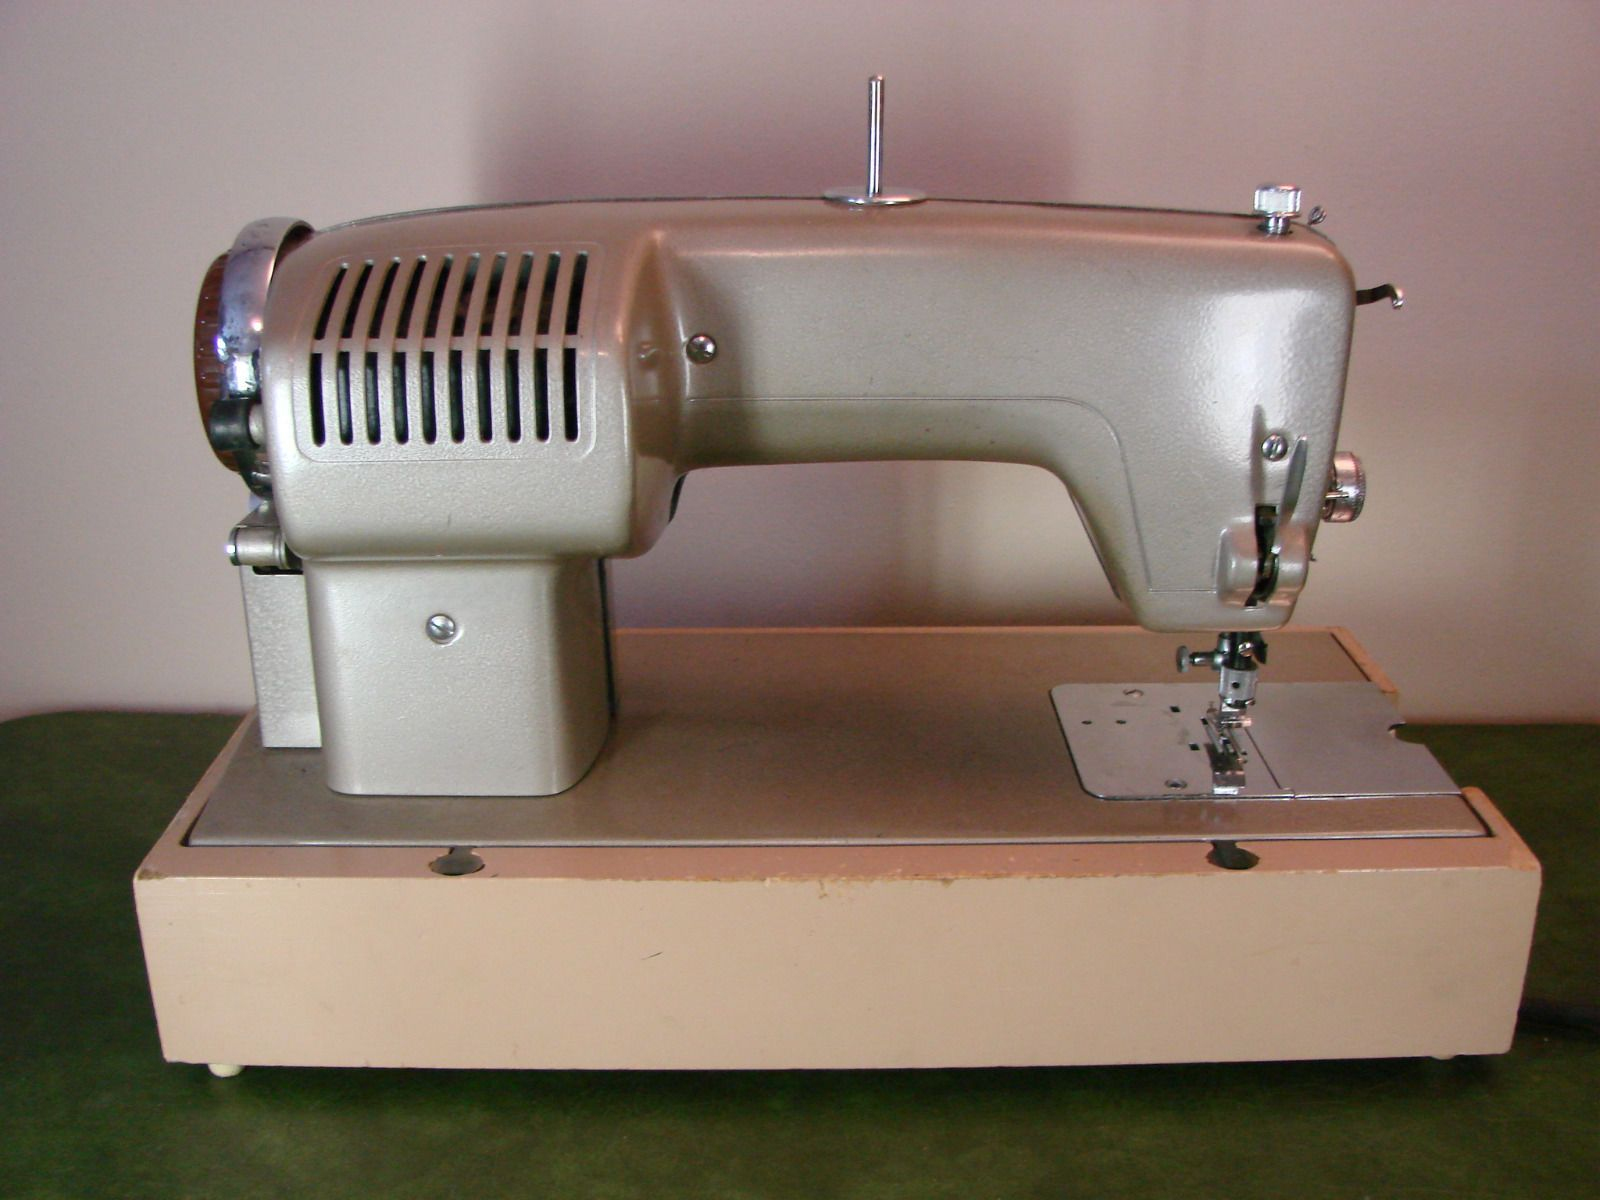 Privileg sewing machine instructions